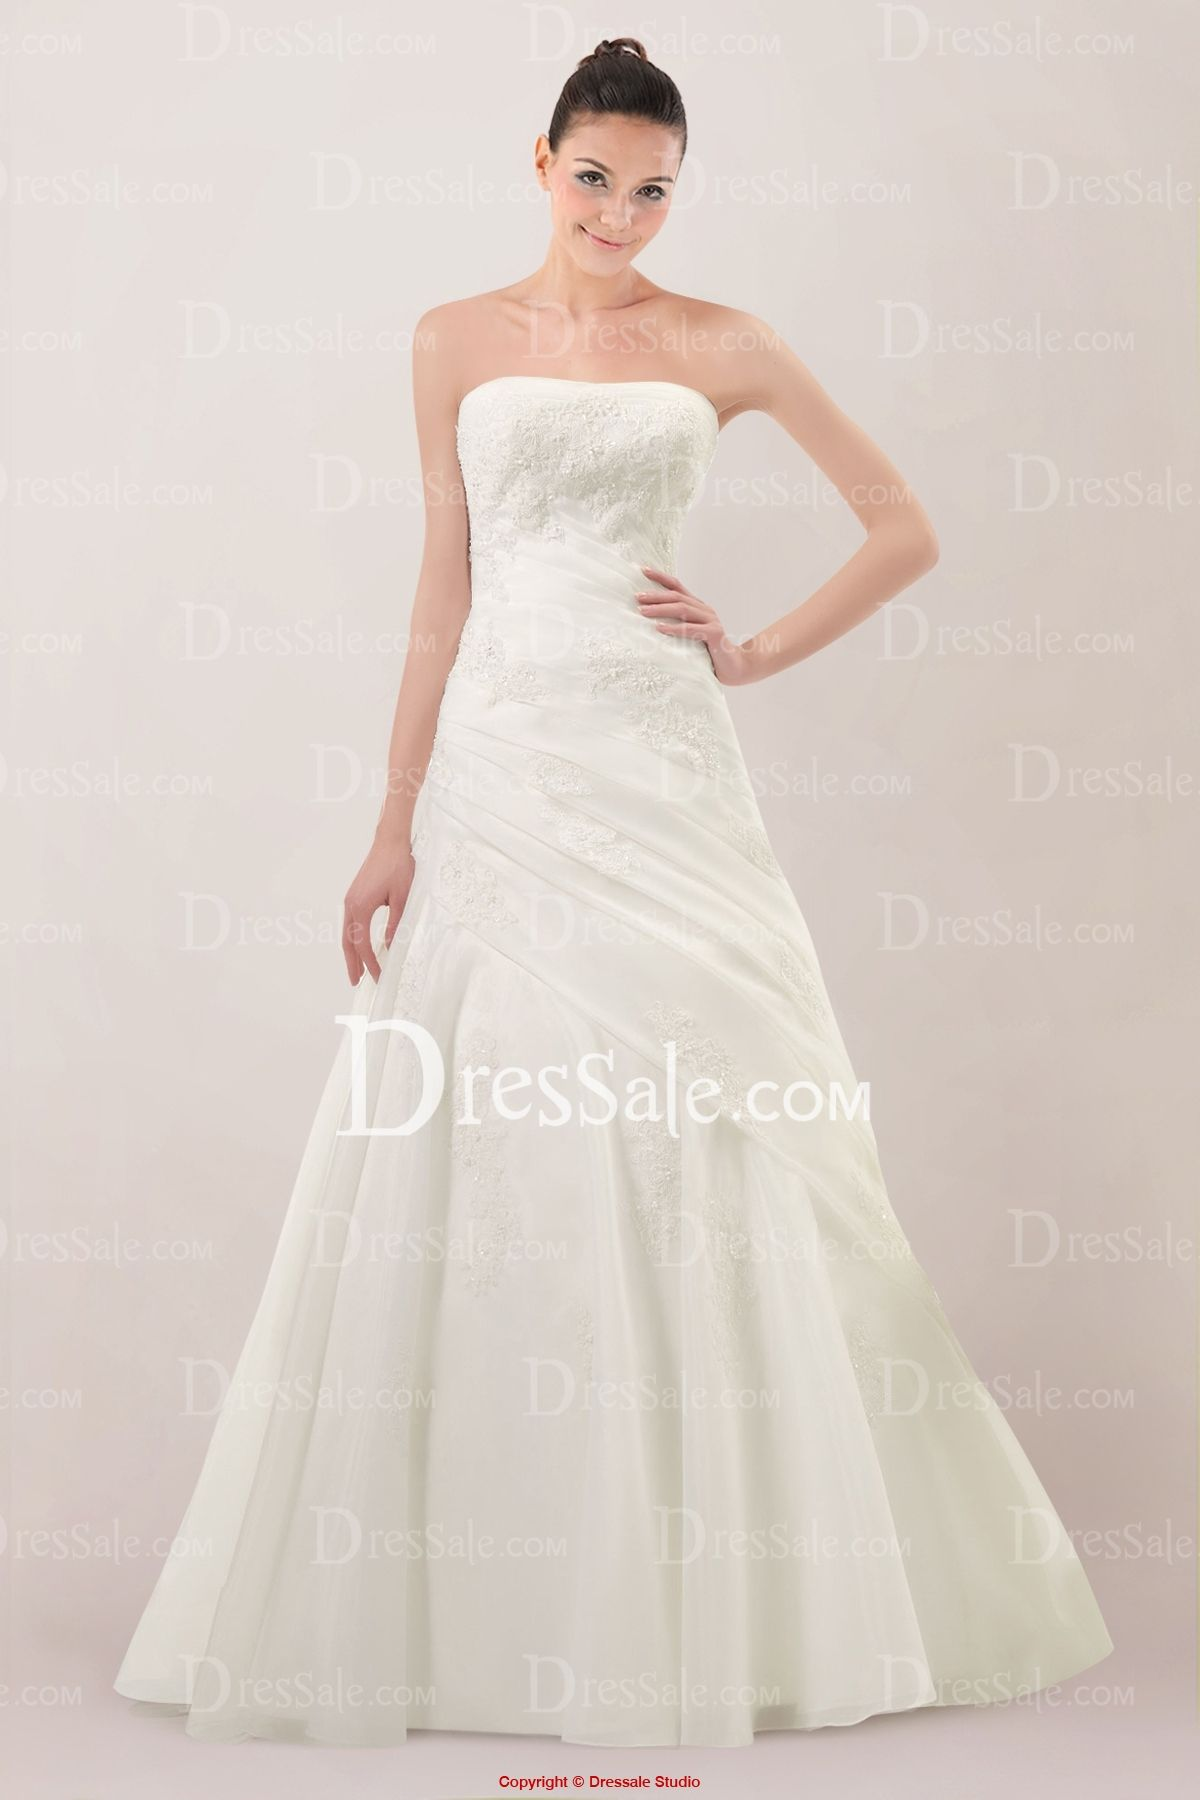 Vintage Strapless A-line Wedding Dress Featuring Lace Applique and Court Train